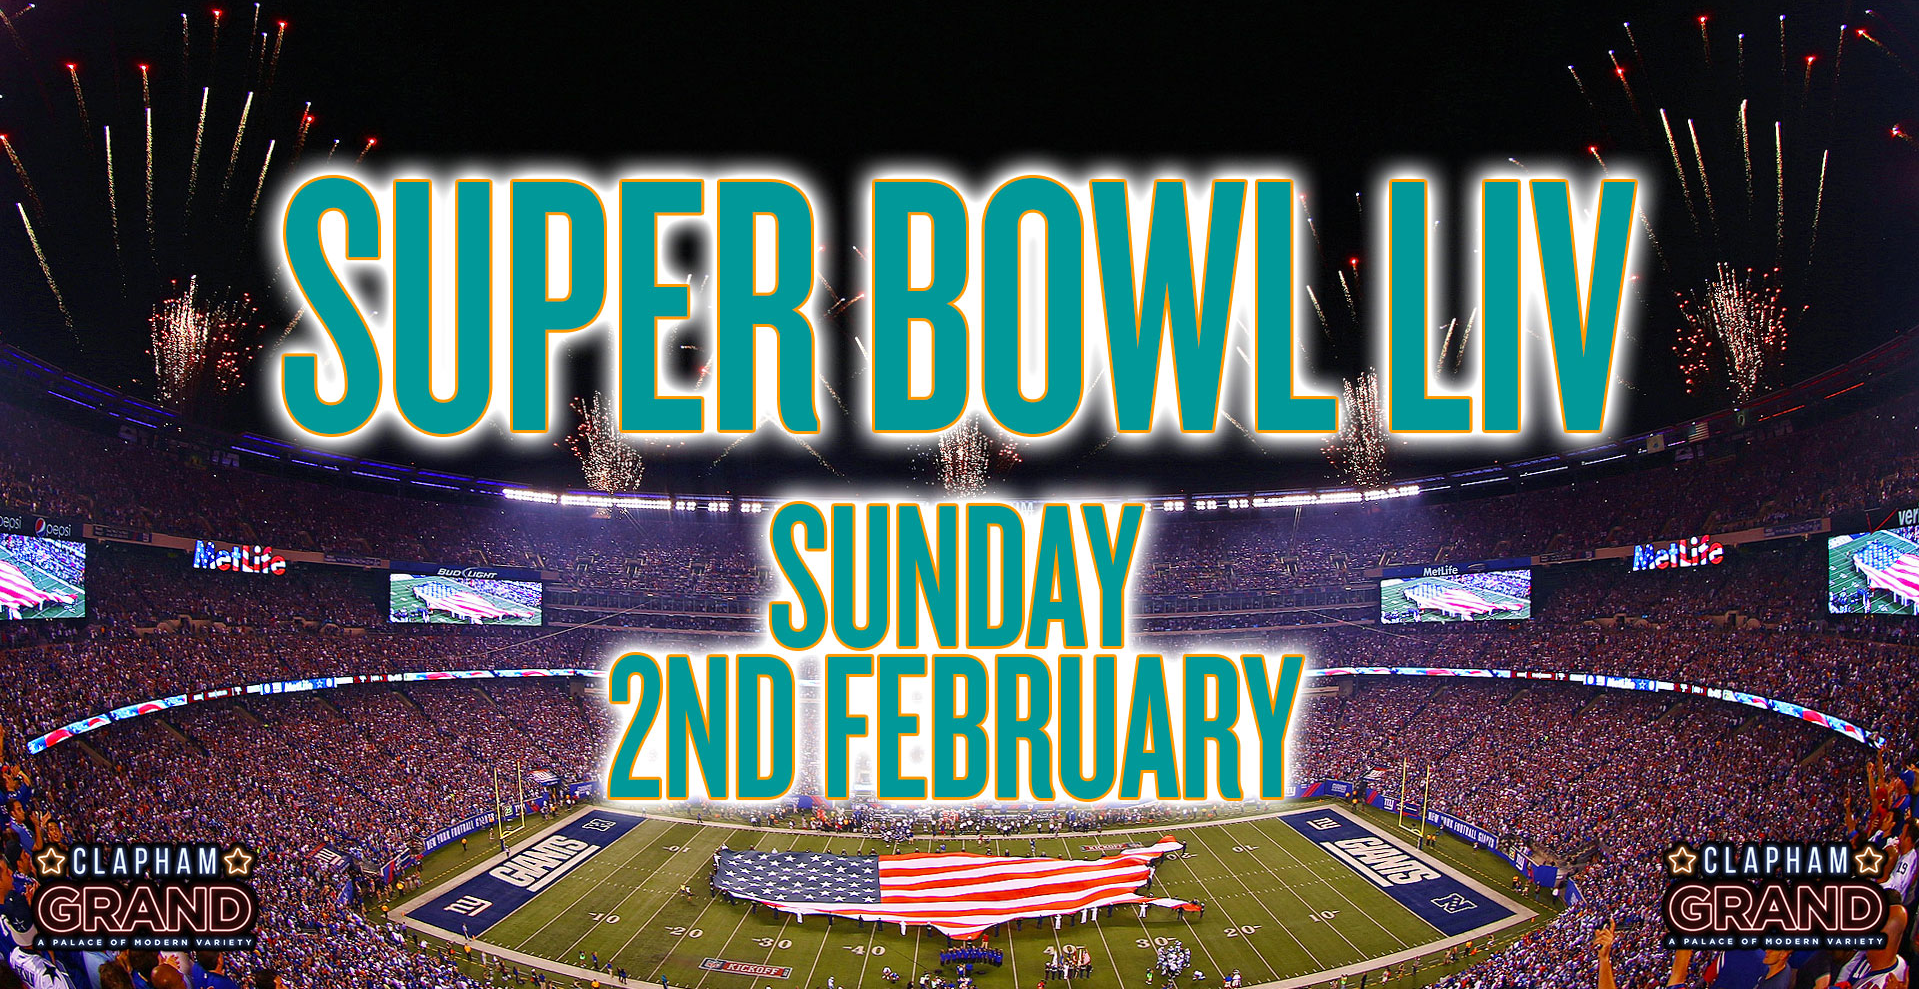 Super Bowl LIV Screening at The Clapham Grand